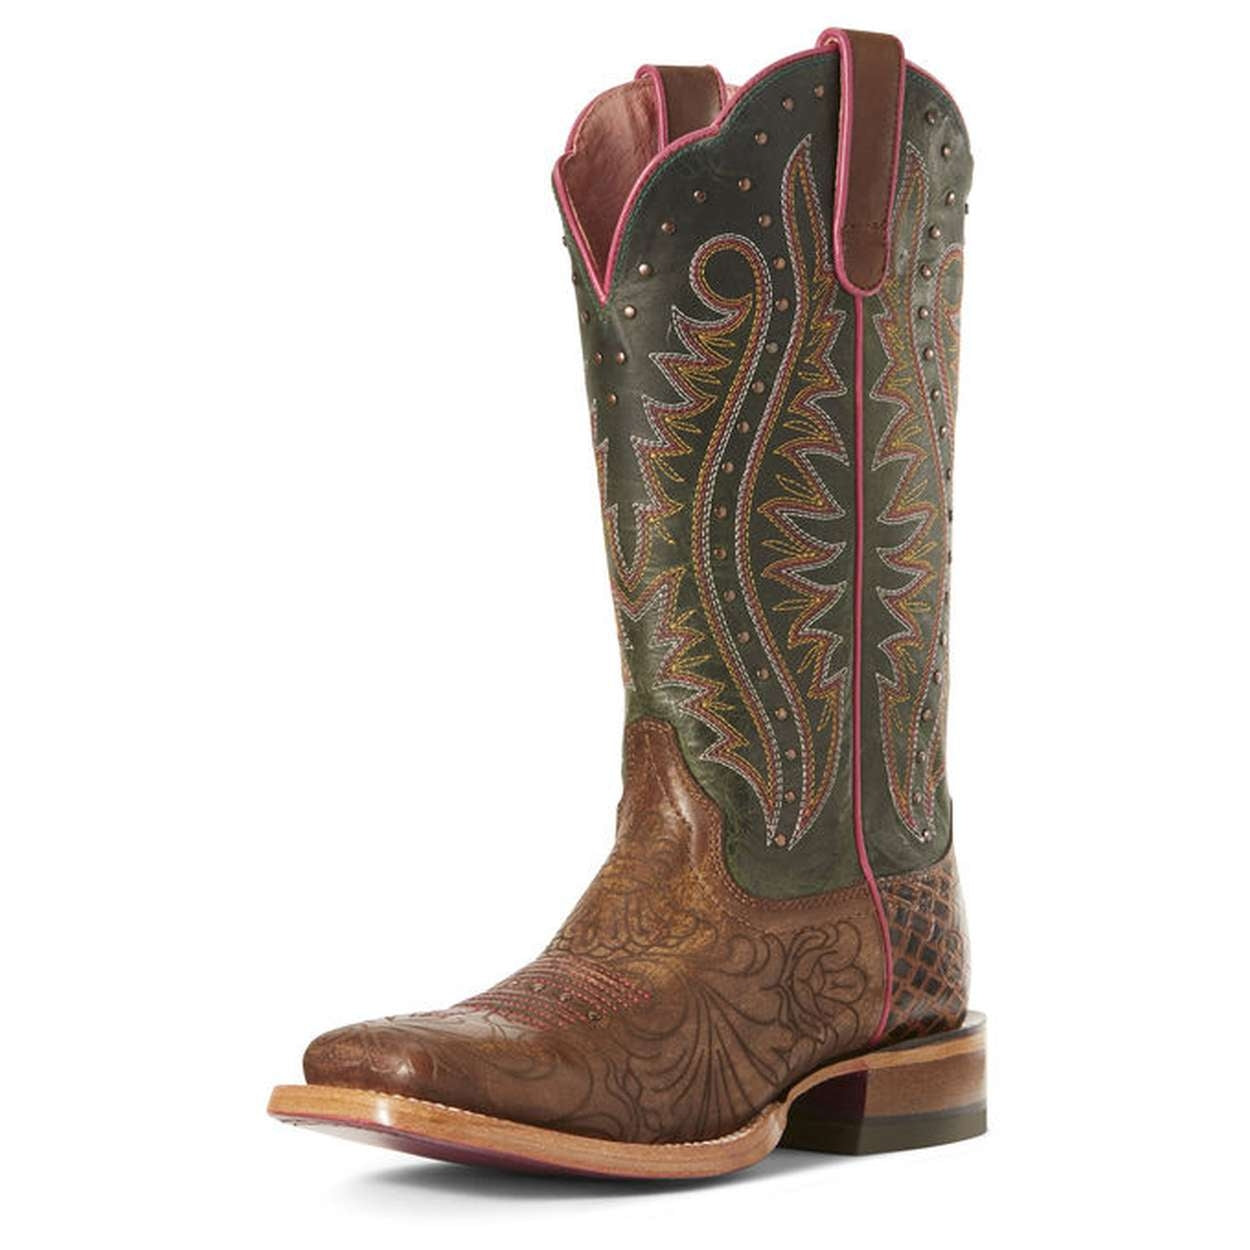 ARIAT LADIES MONTAGE LASERED FLORAL BROWN BOOTS